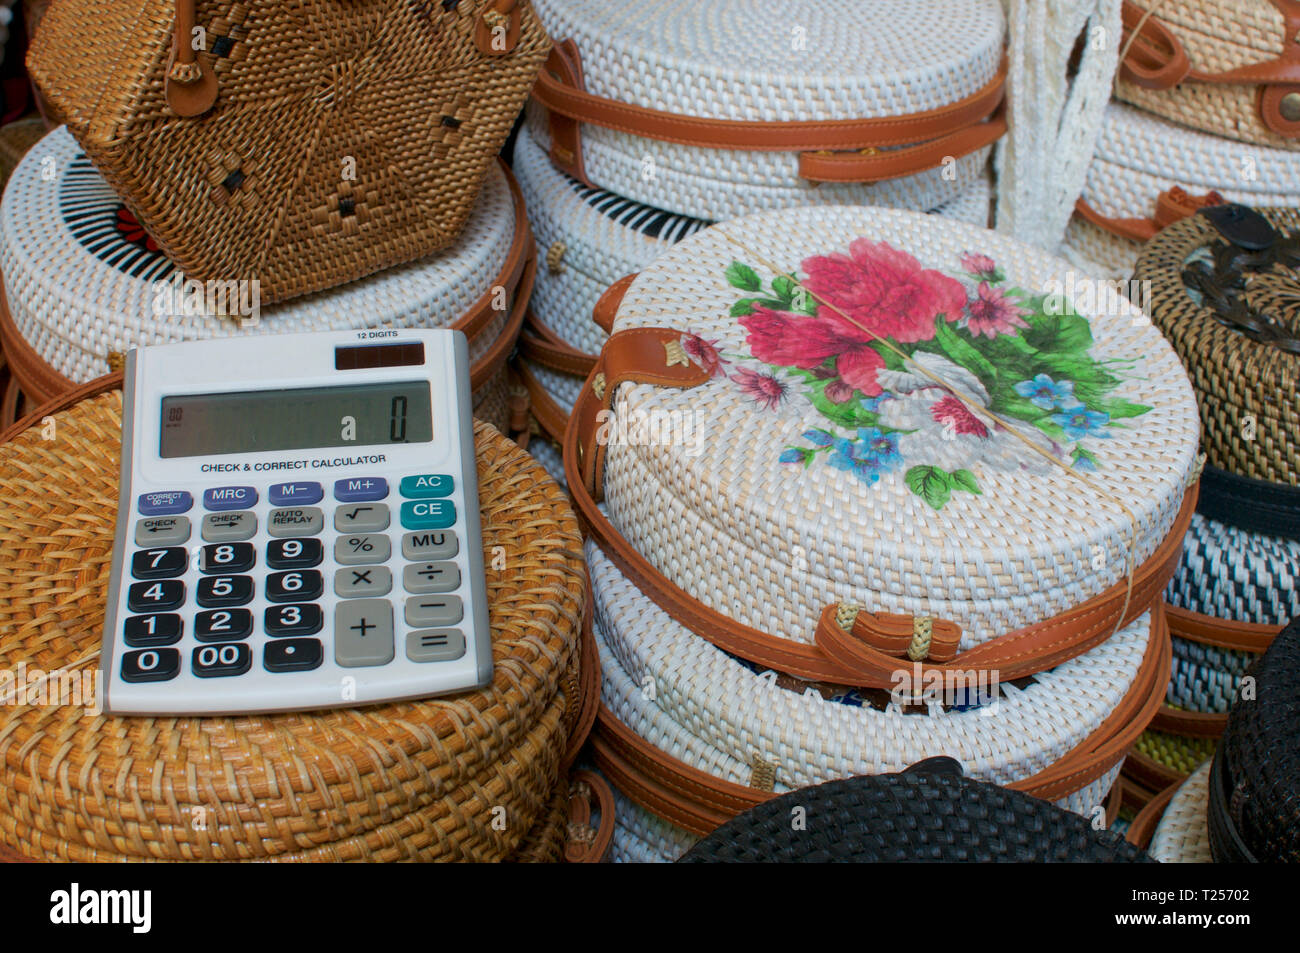 Close up picture of an calculator on a group of brown and white rattan bags captured on at the Ubud Art Market in Bali ,Indonesia - Stock Image